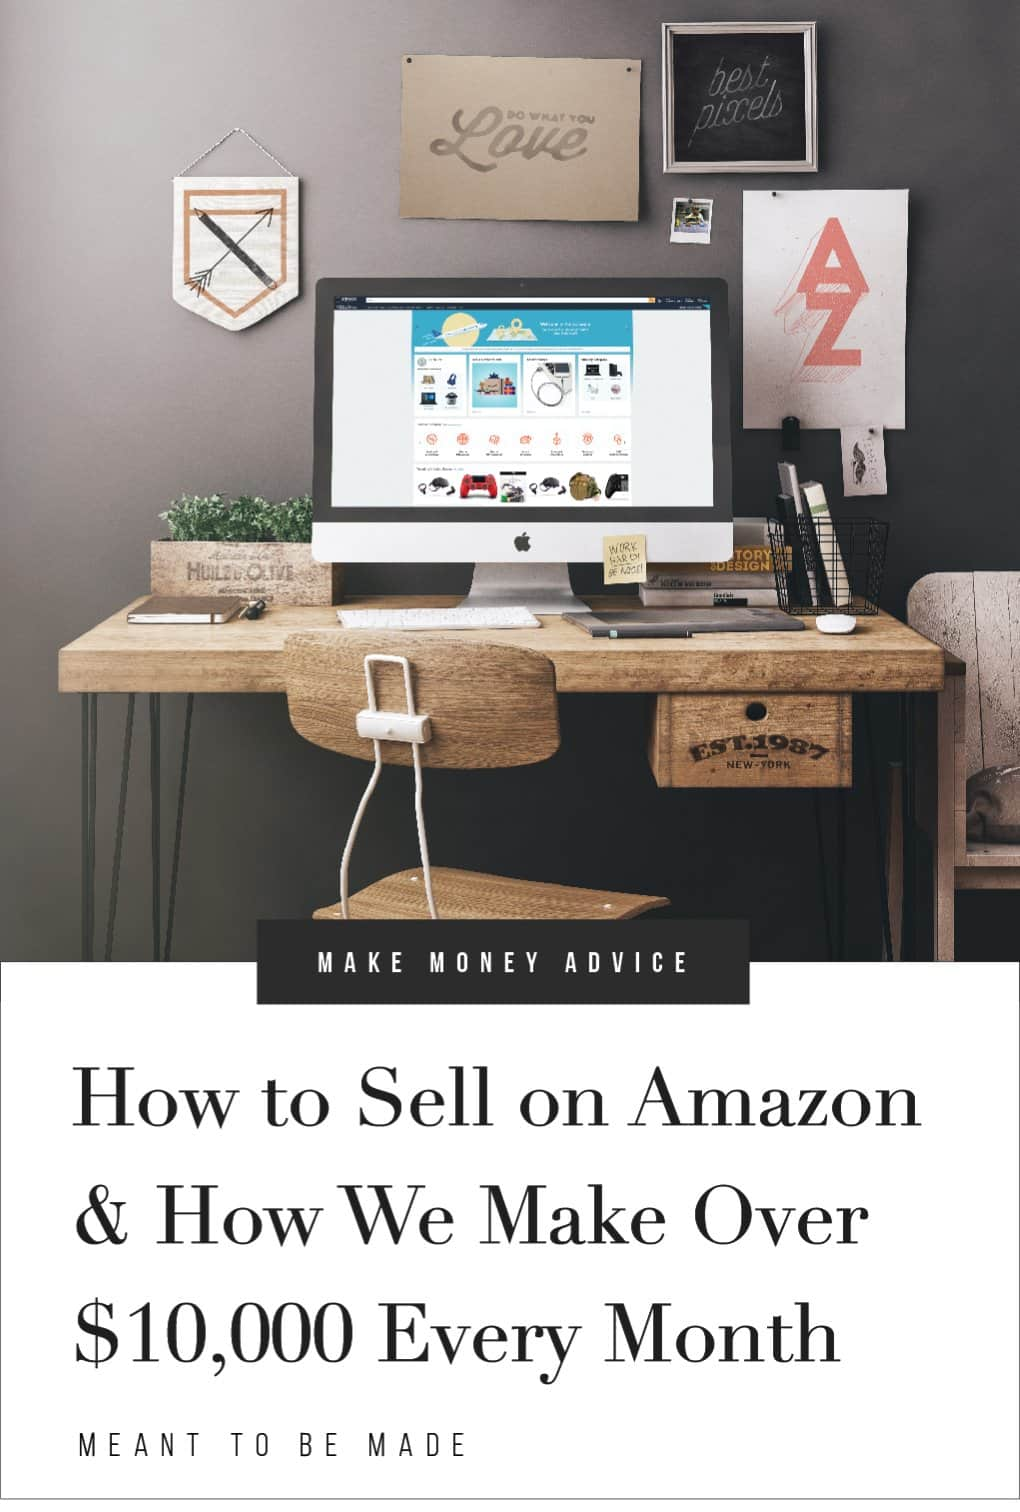 How to Sell on Amazon & How We Make Over $10,000 Every Month